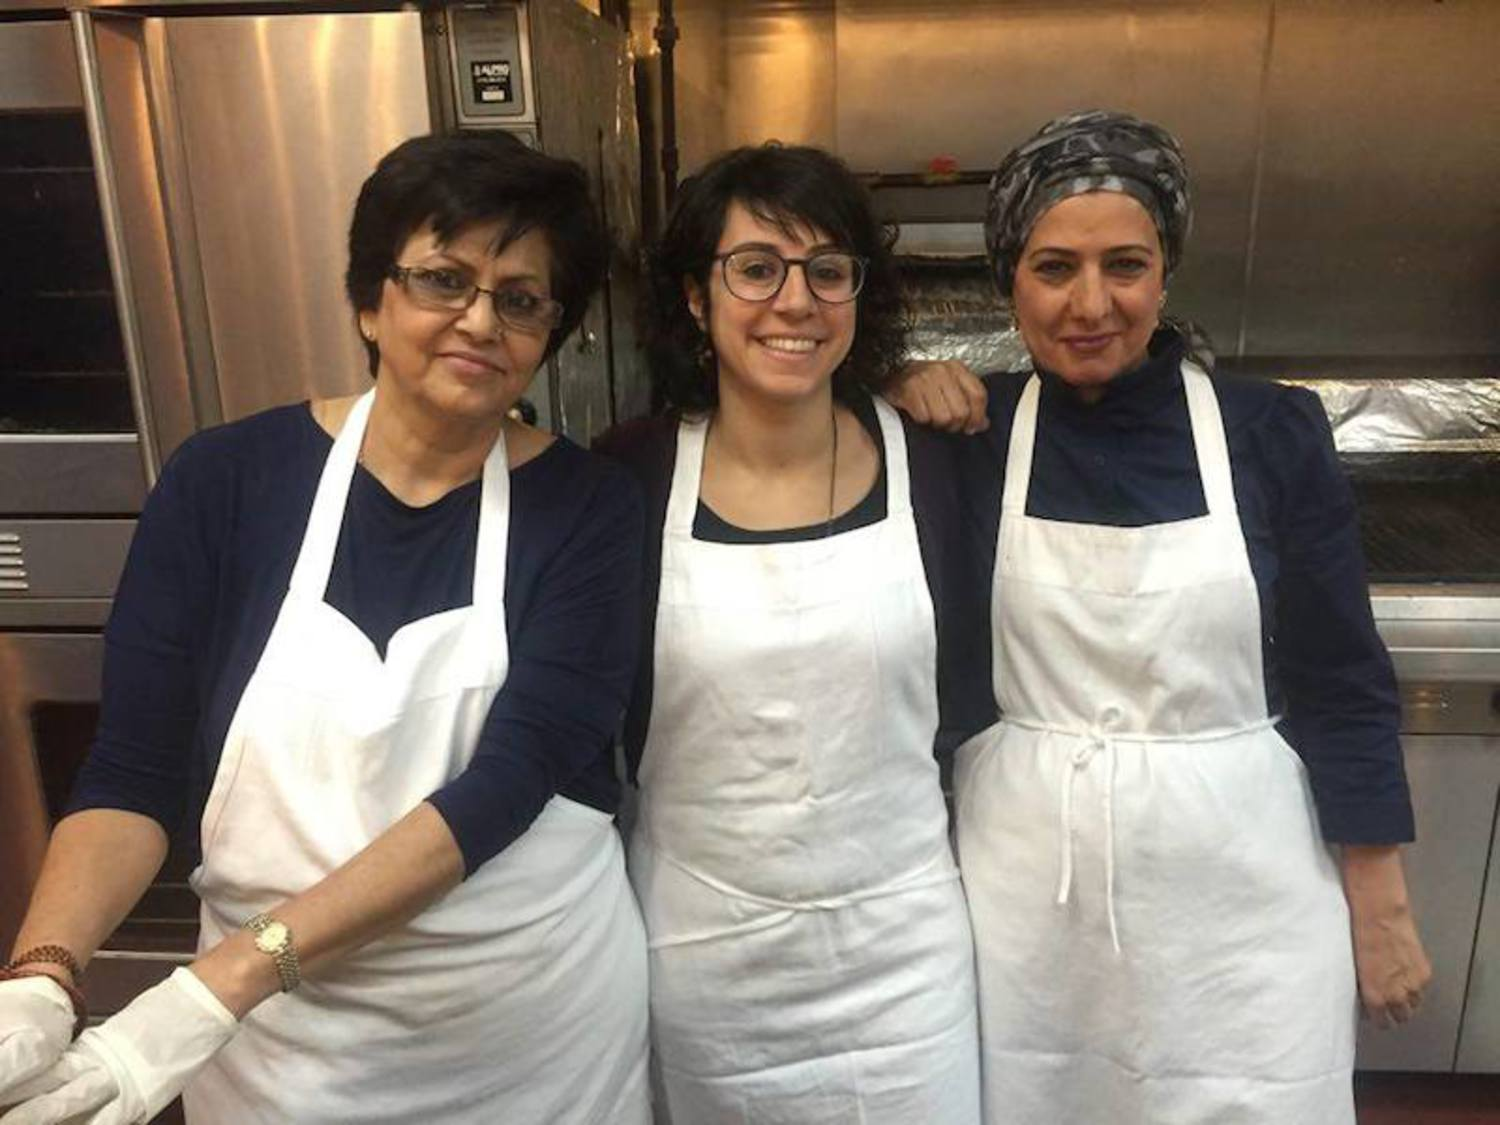 From left to right: chef Rachana Rimal, CEO Manal Kahi, and chef Nida Al Janabi in the kitchen